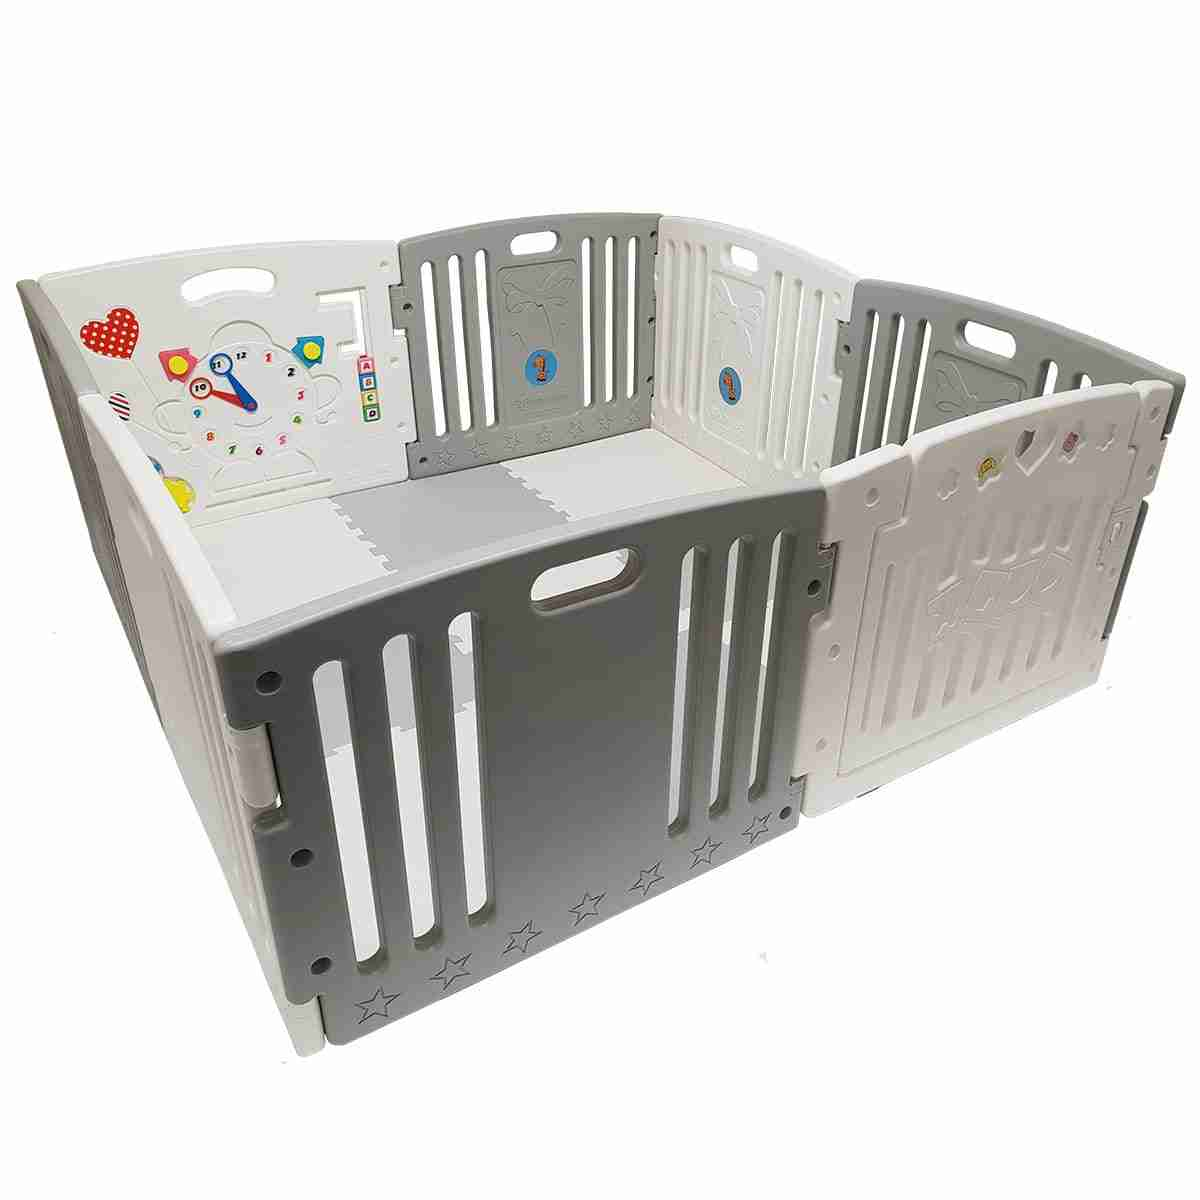 This large plastic playpen has enough room for toddlers to play away!